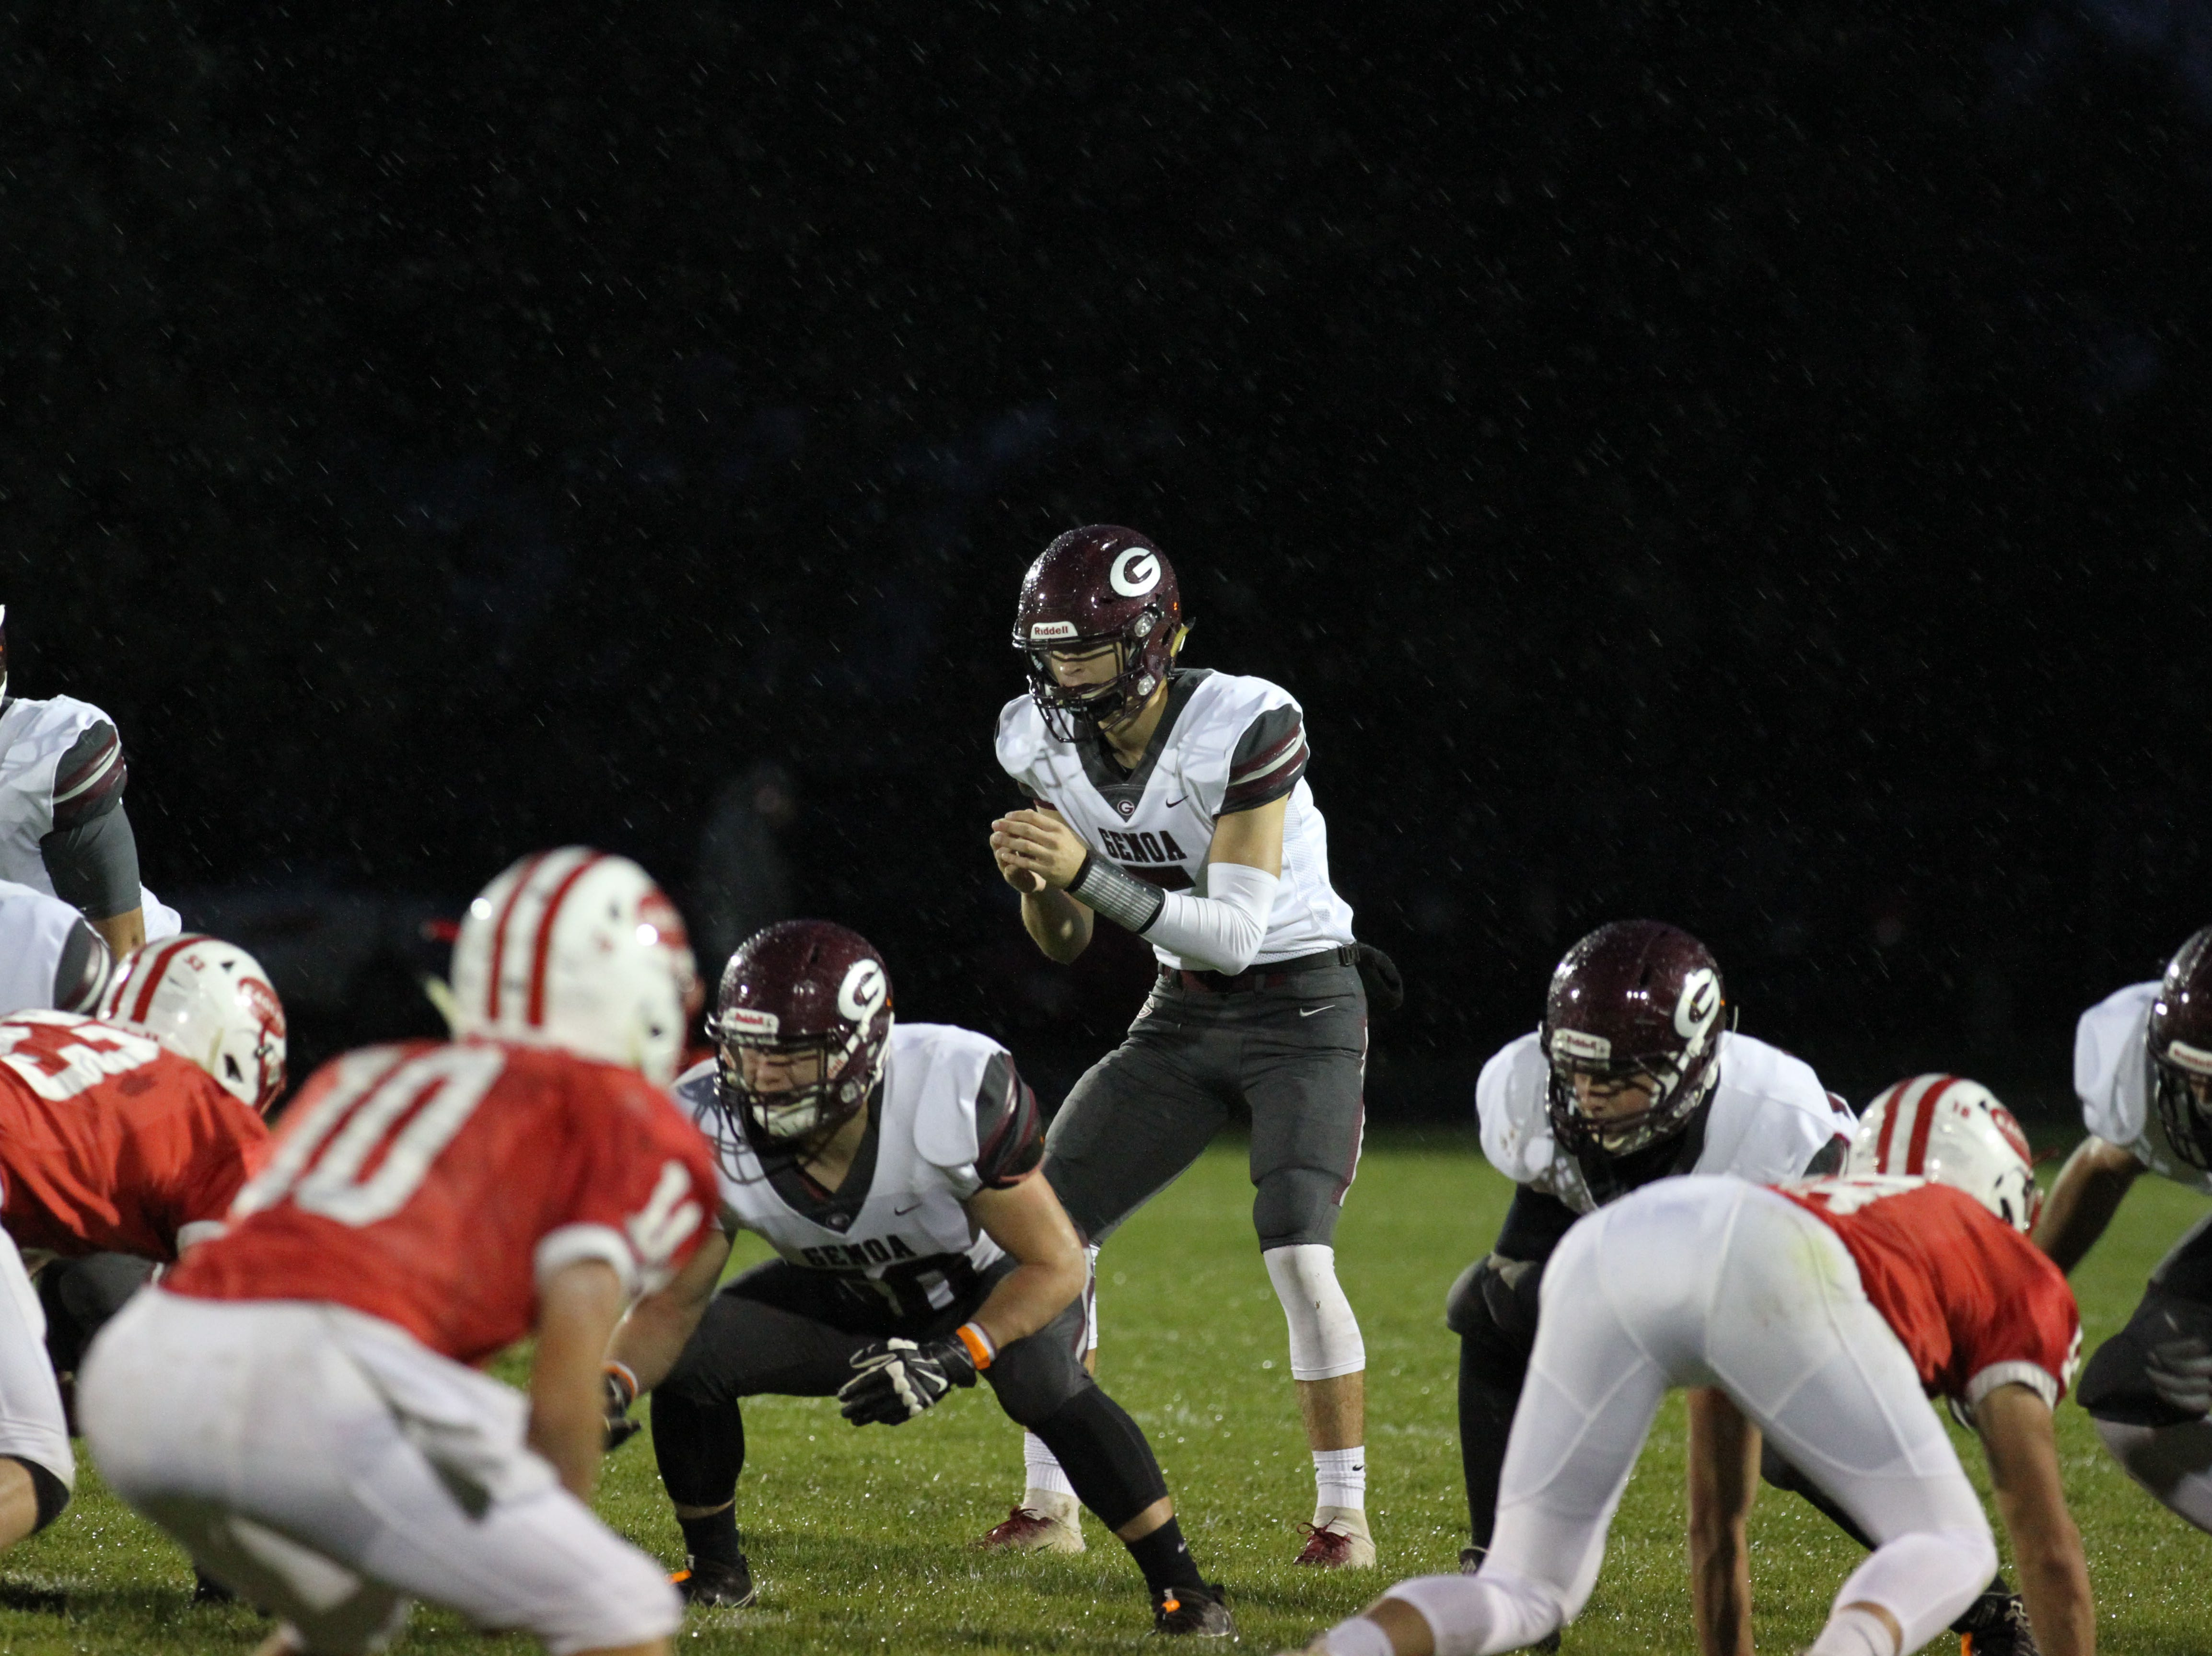 Genoa's Jacob Plant waits for the snap in the driving rain against Eastwood.